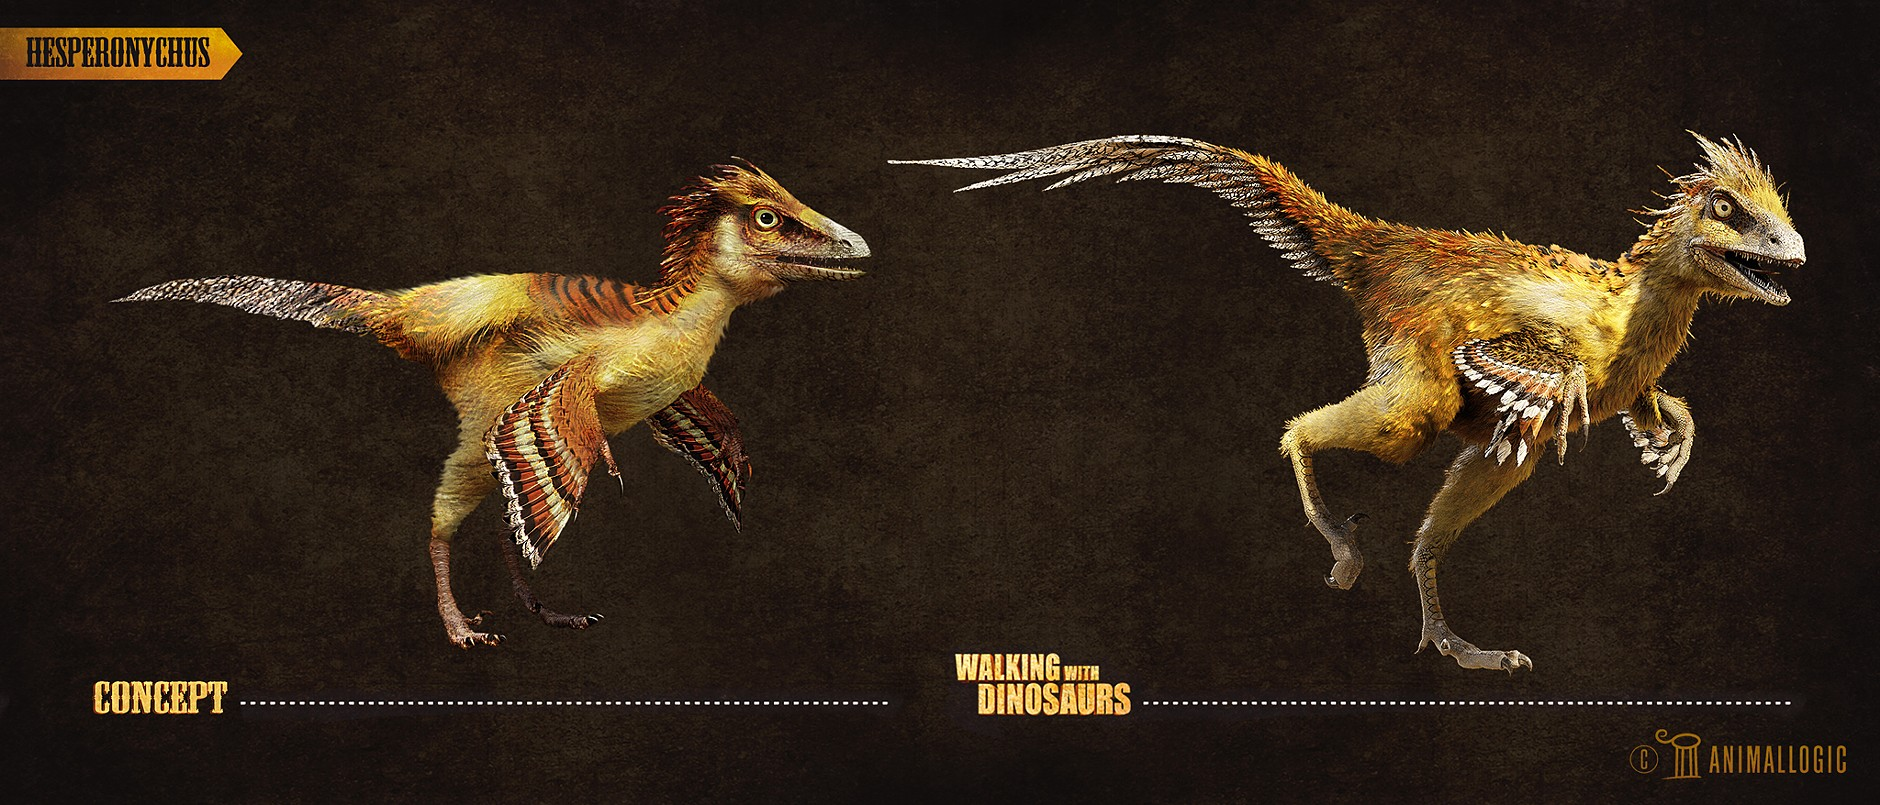 Hesperonychus | www.imgkid.com - The Image Kid Has It!